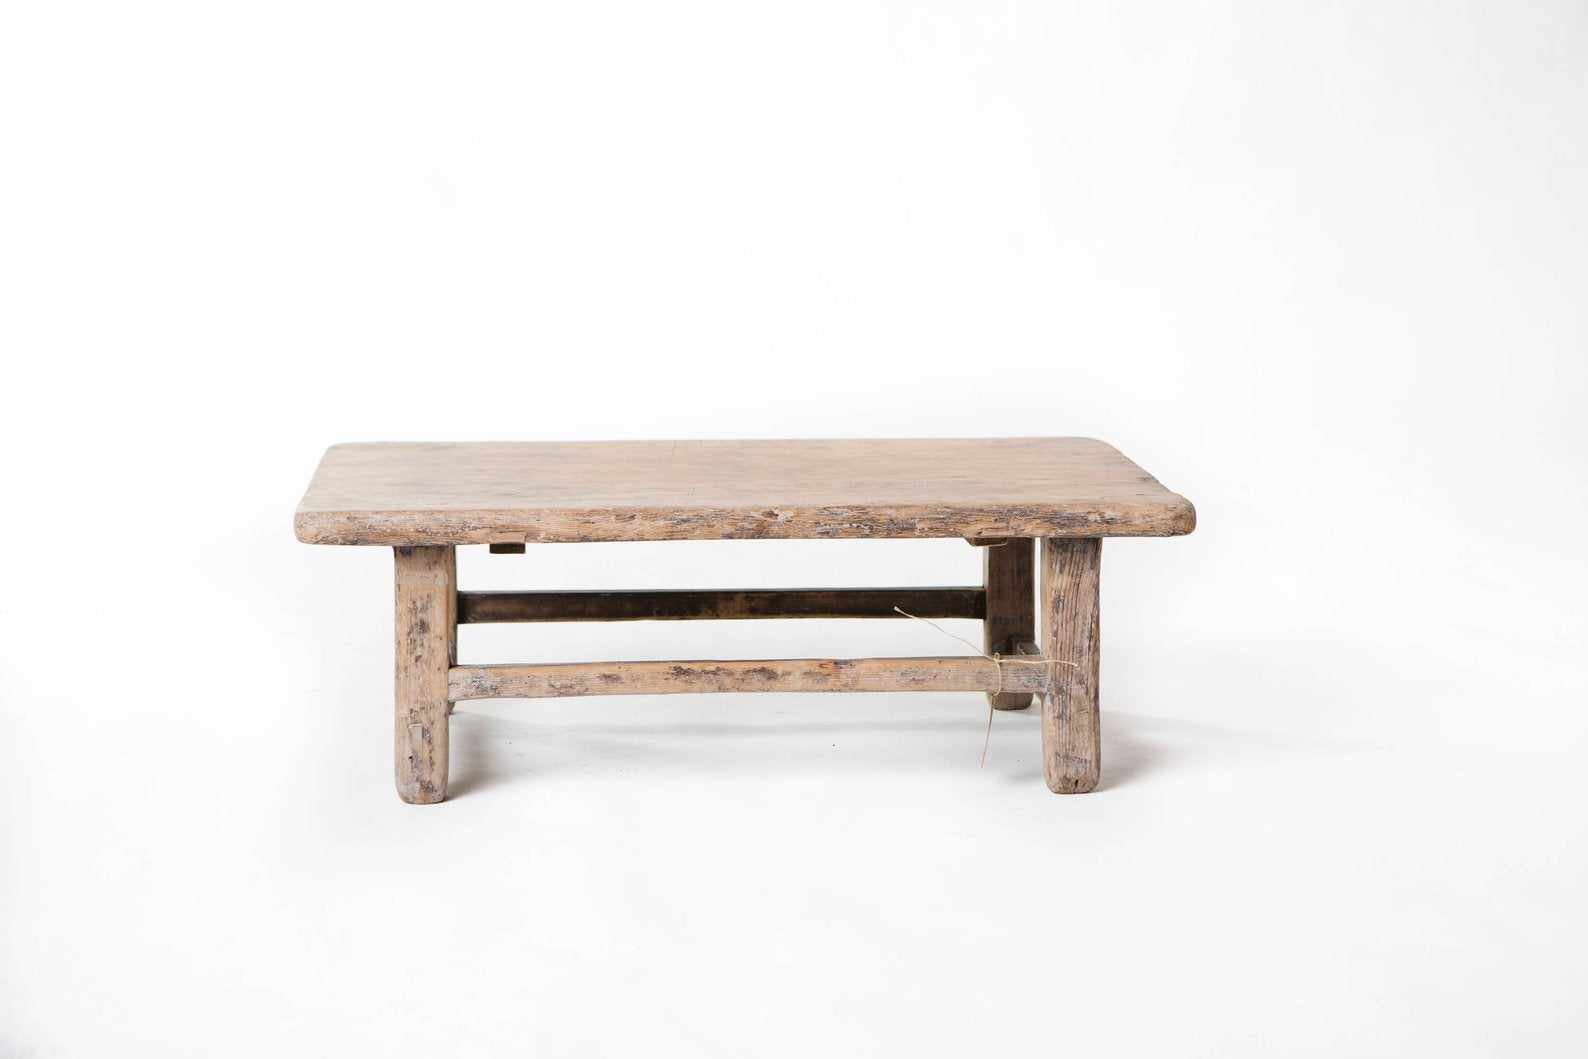 new_old wooden stool